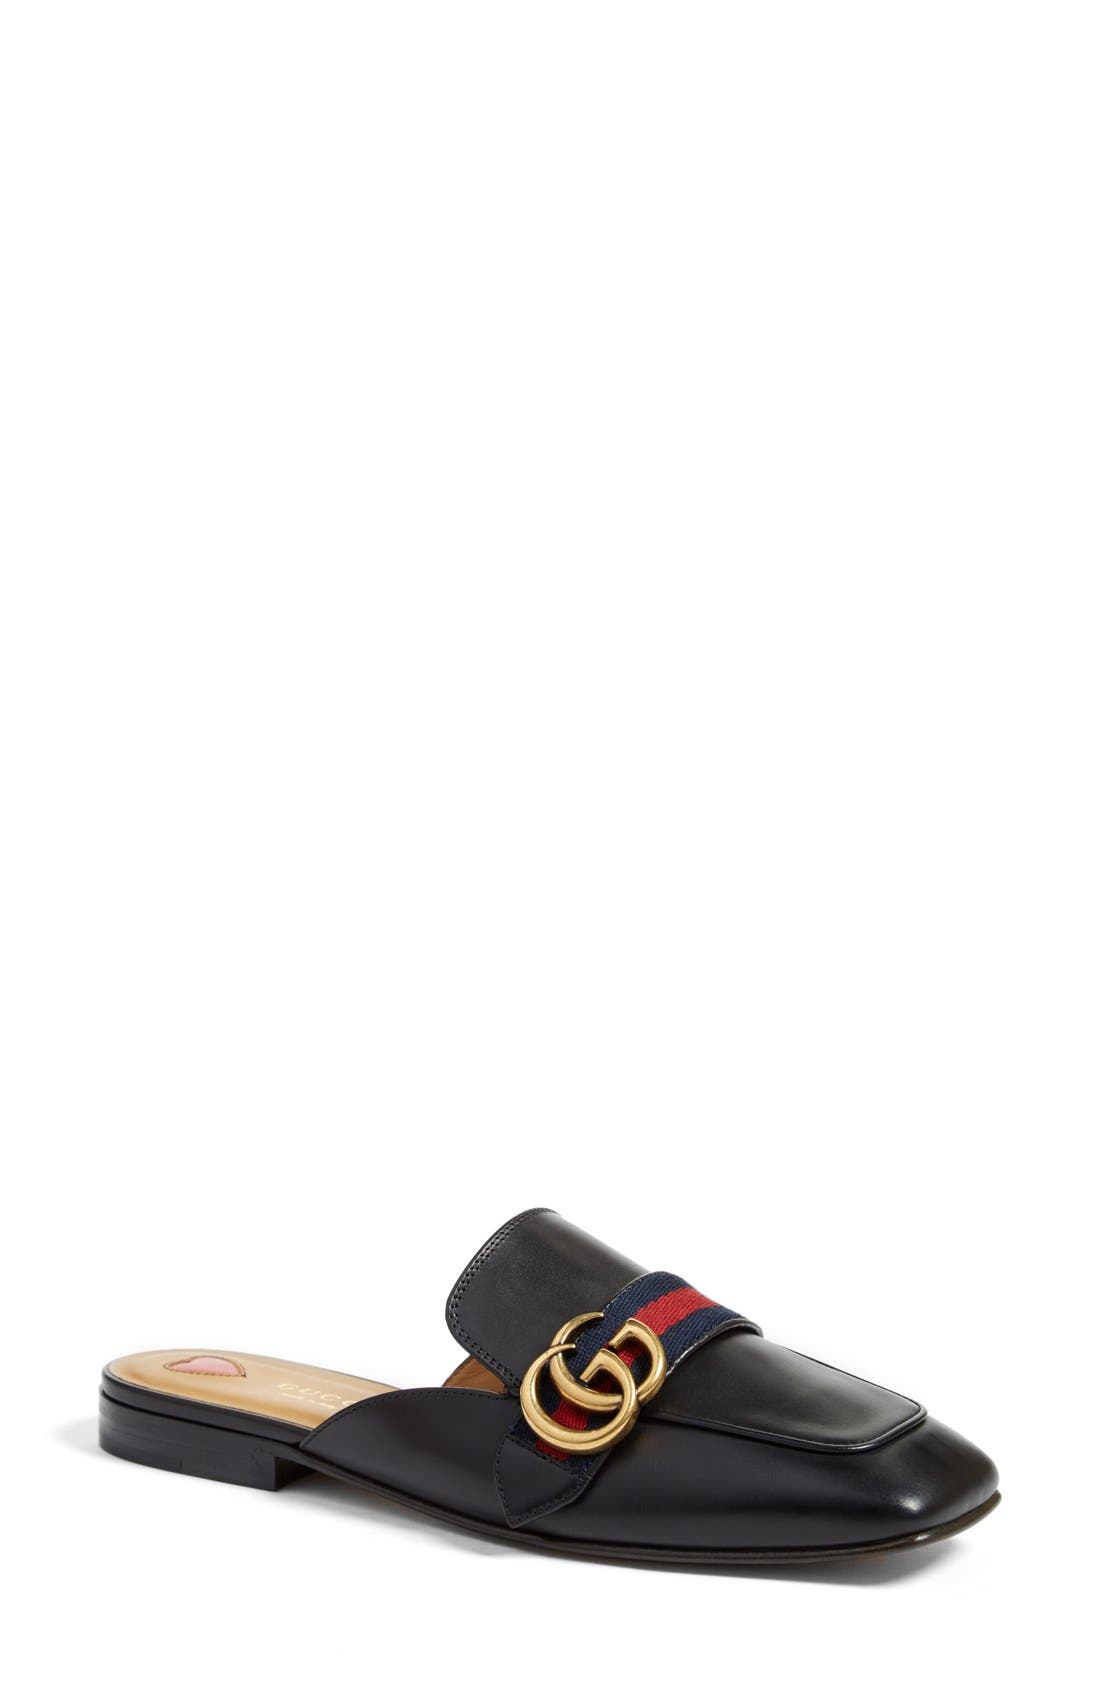 GUCCI Loafer Mule, Main, color, BLACK LEATHER